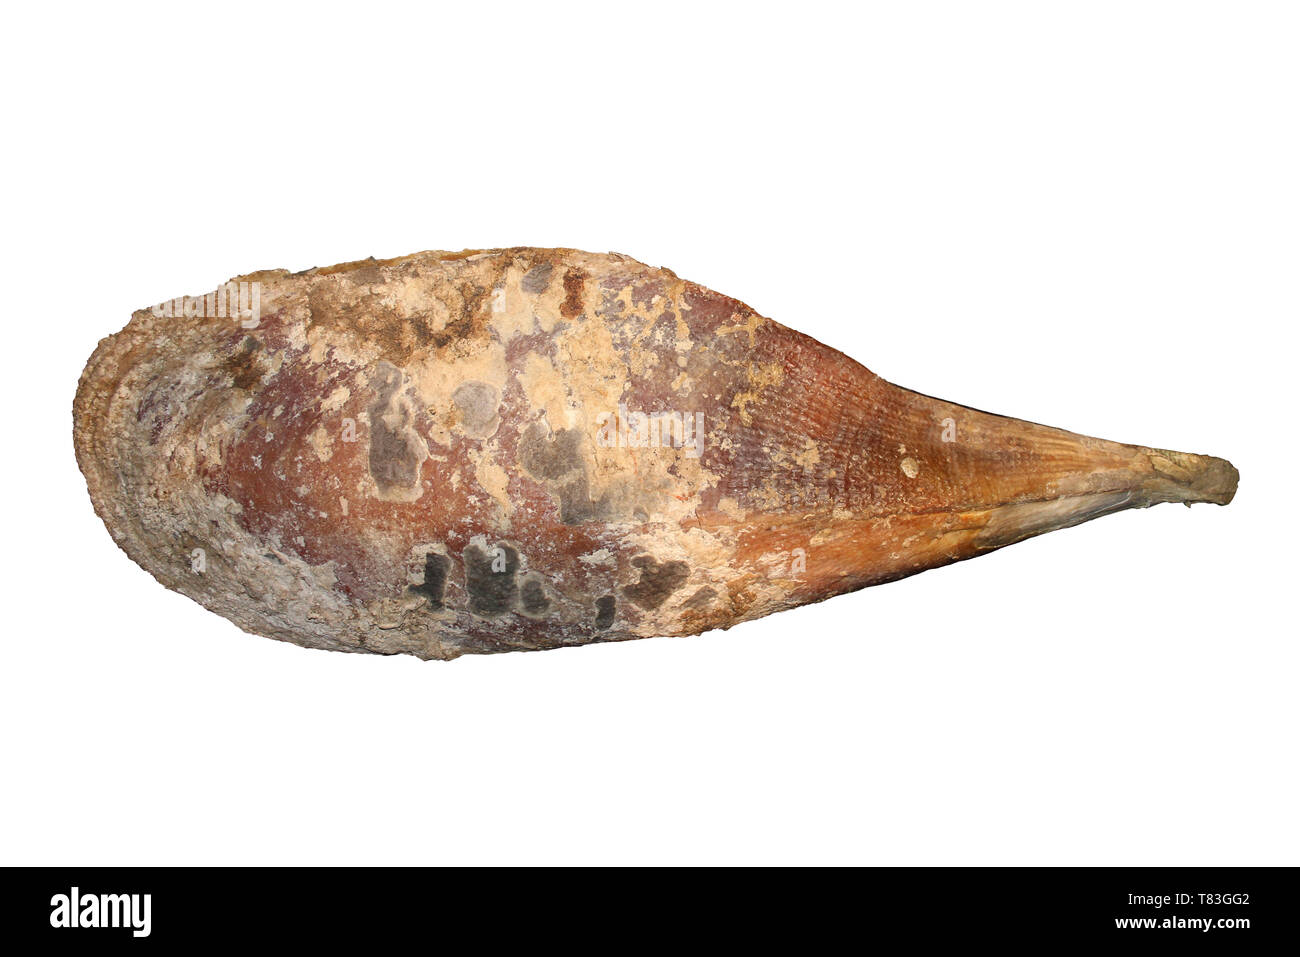 Fan Mussel Atrina fragilis - one of the largest (30 to 48 cm long) European bivalve molluscs Stock Photo